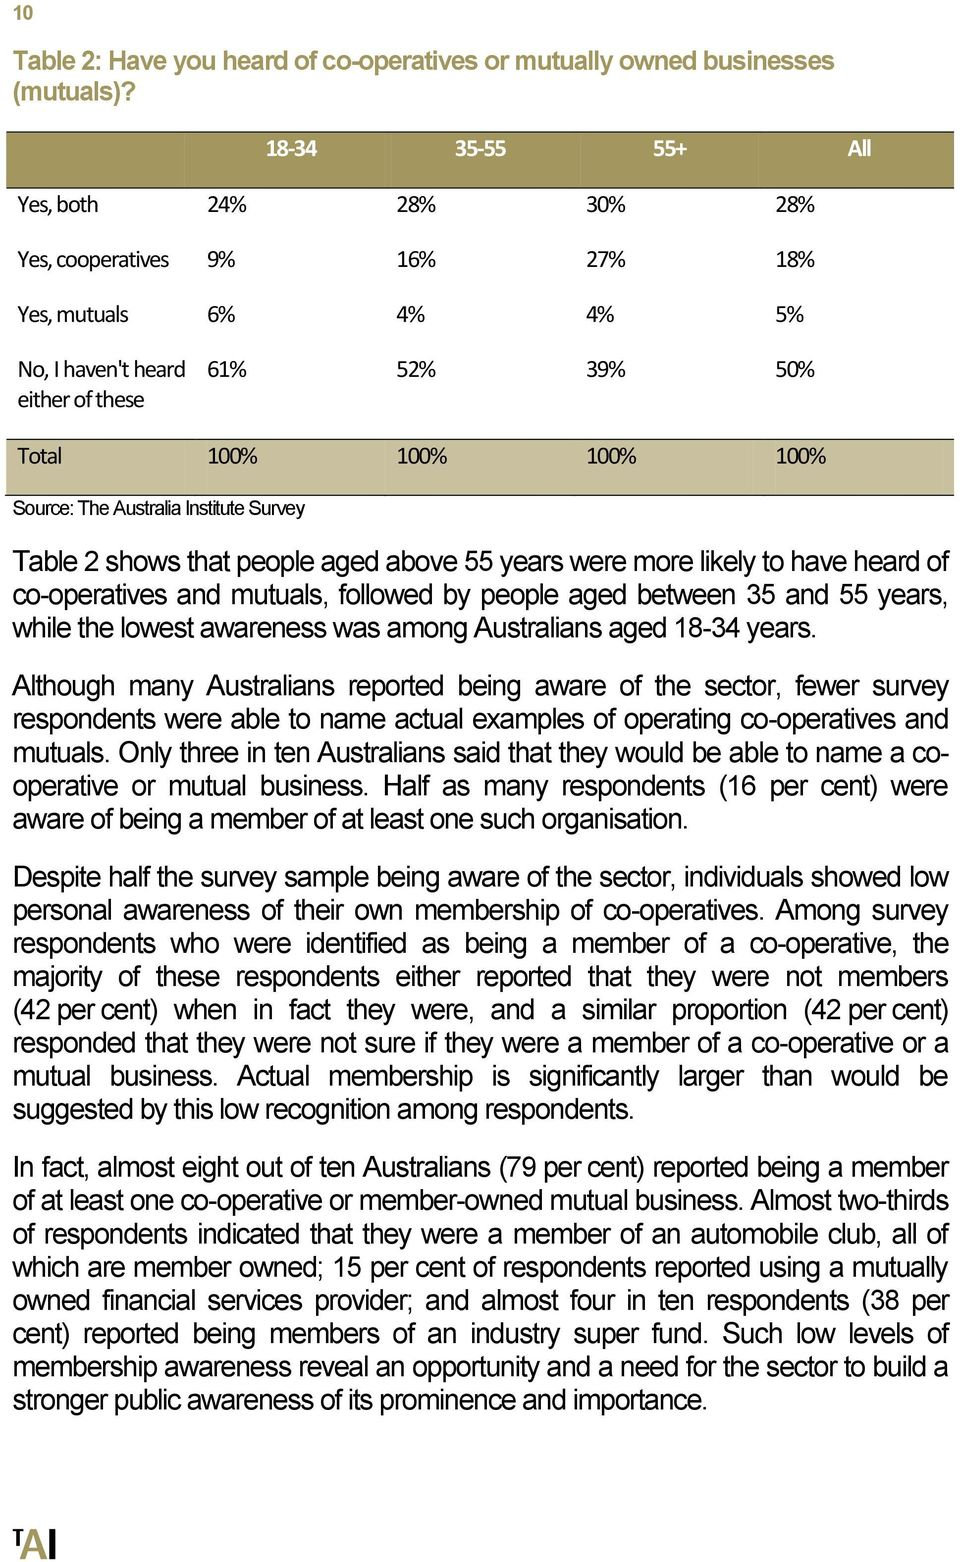 Australia Institute Survey Table 2 shows that people aged above 55 years were more likely to have heard of co-operatives and mutuals, followed by people aged between 35 and 55 years, while the lowest